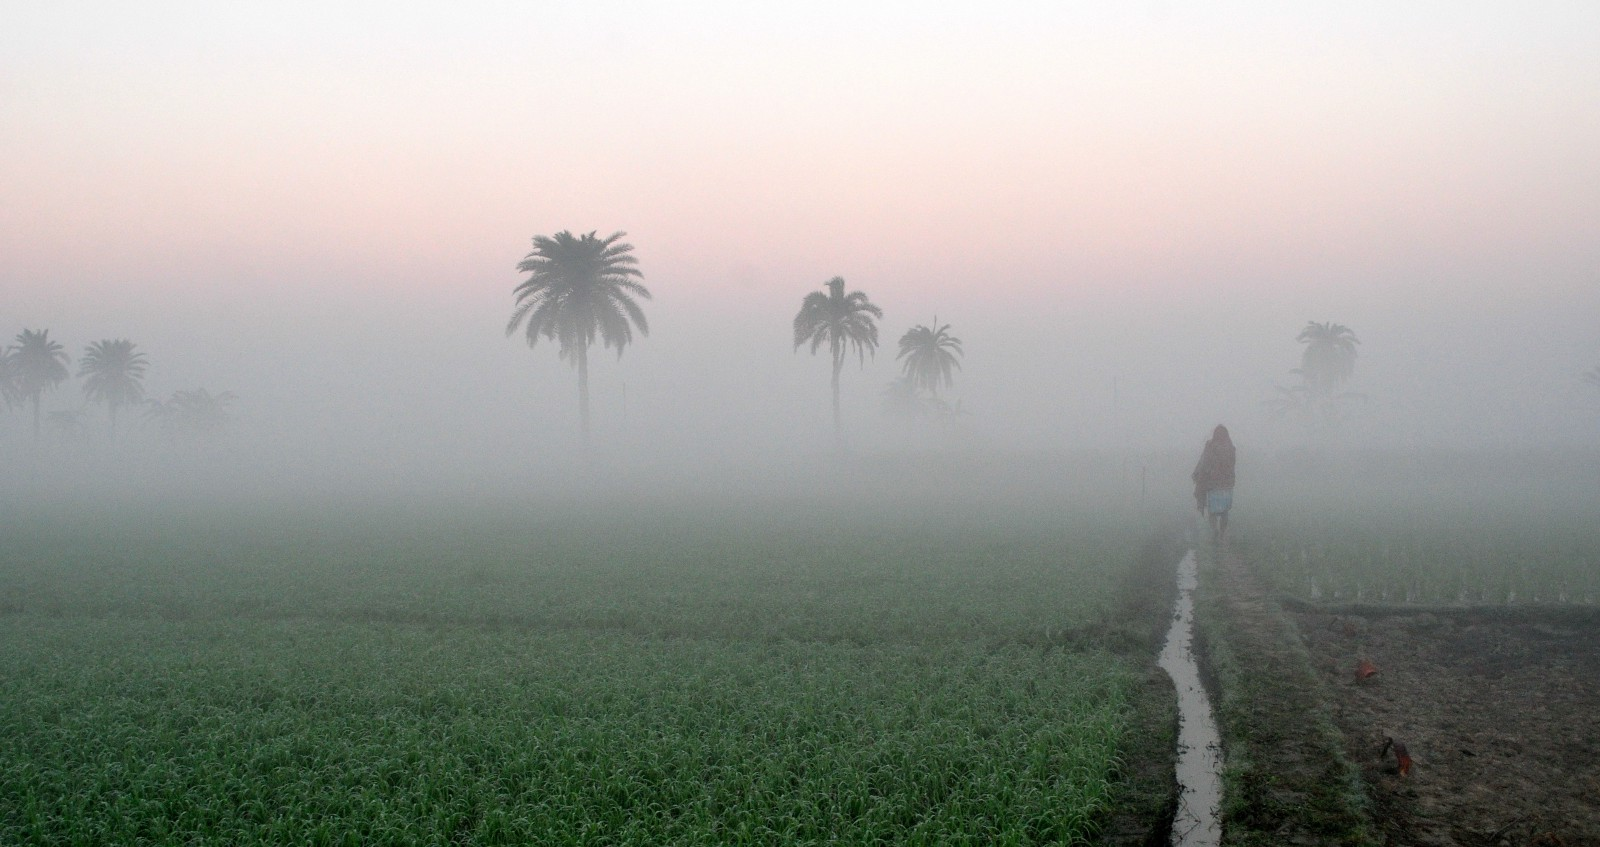 Agriculture_in_India,_Sunrise_time_at_a_village